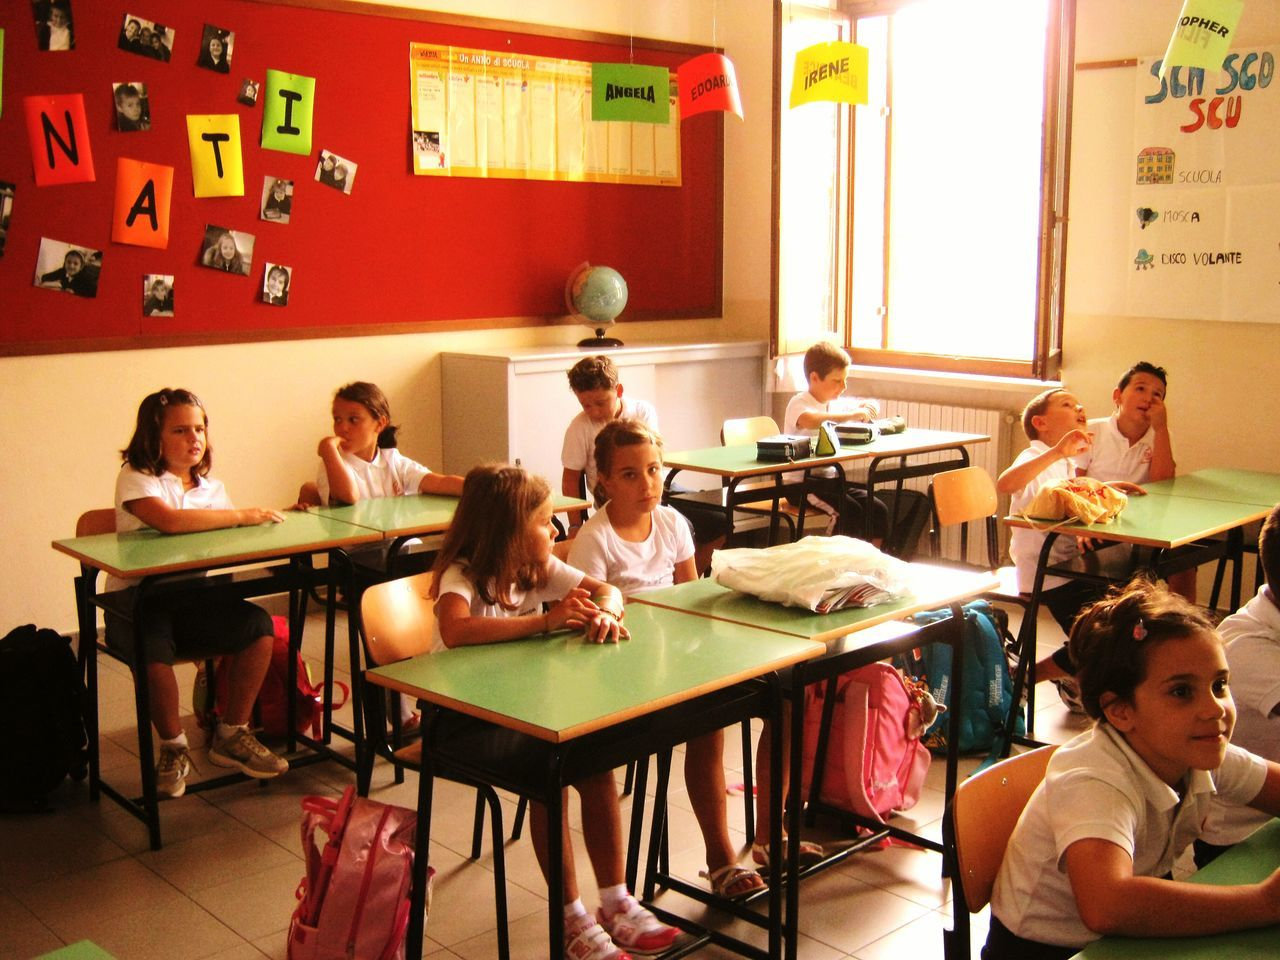 education, desk, indoors, classroom, table, sitting, large group of people, girls, group of people, boys, real people, learning, student, childhood, day, people